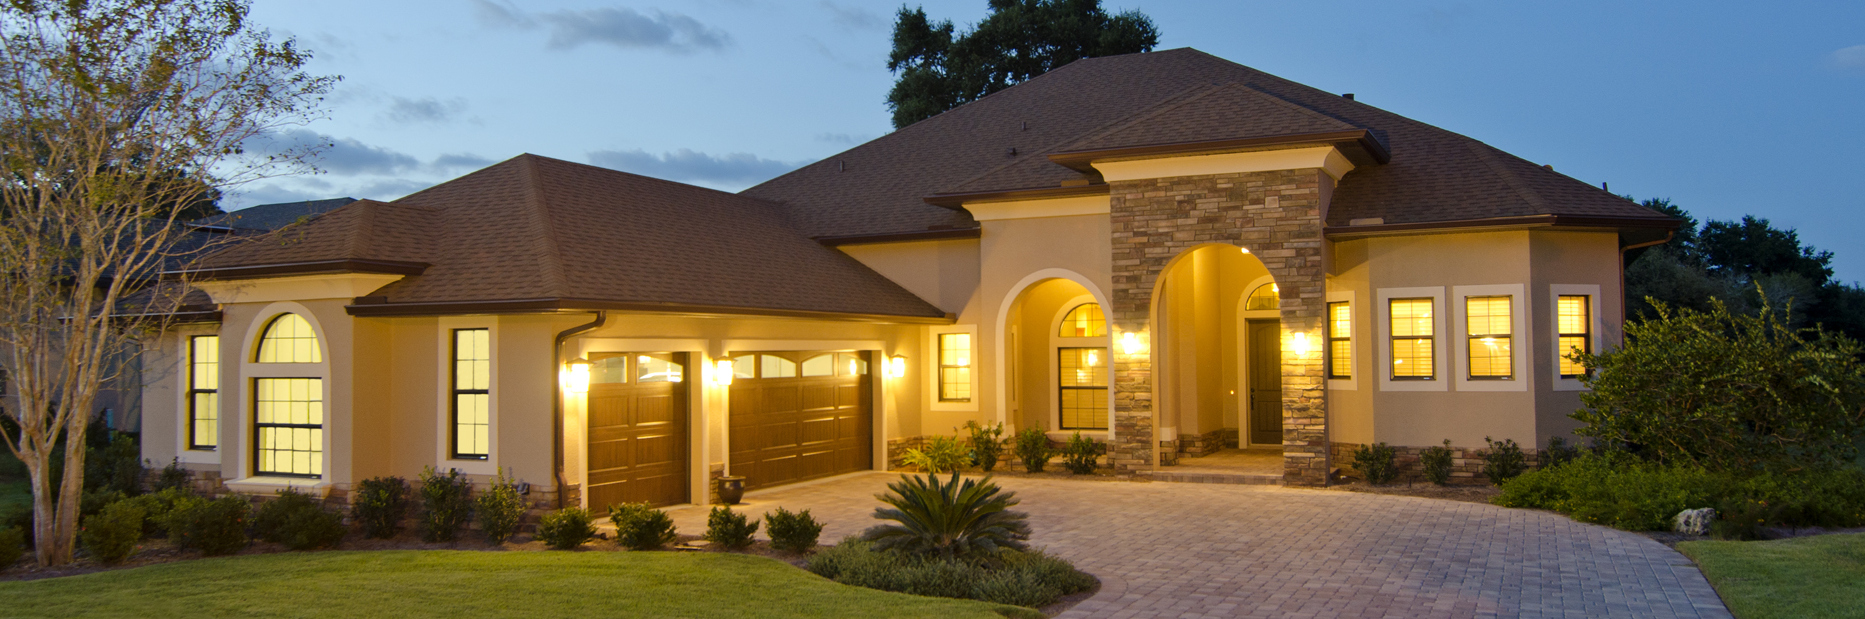 The toscana model harbor hills country club Toscana house